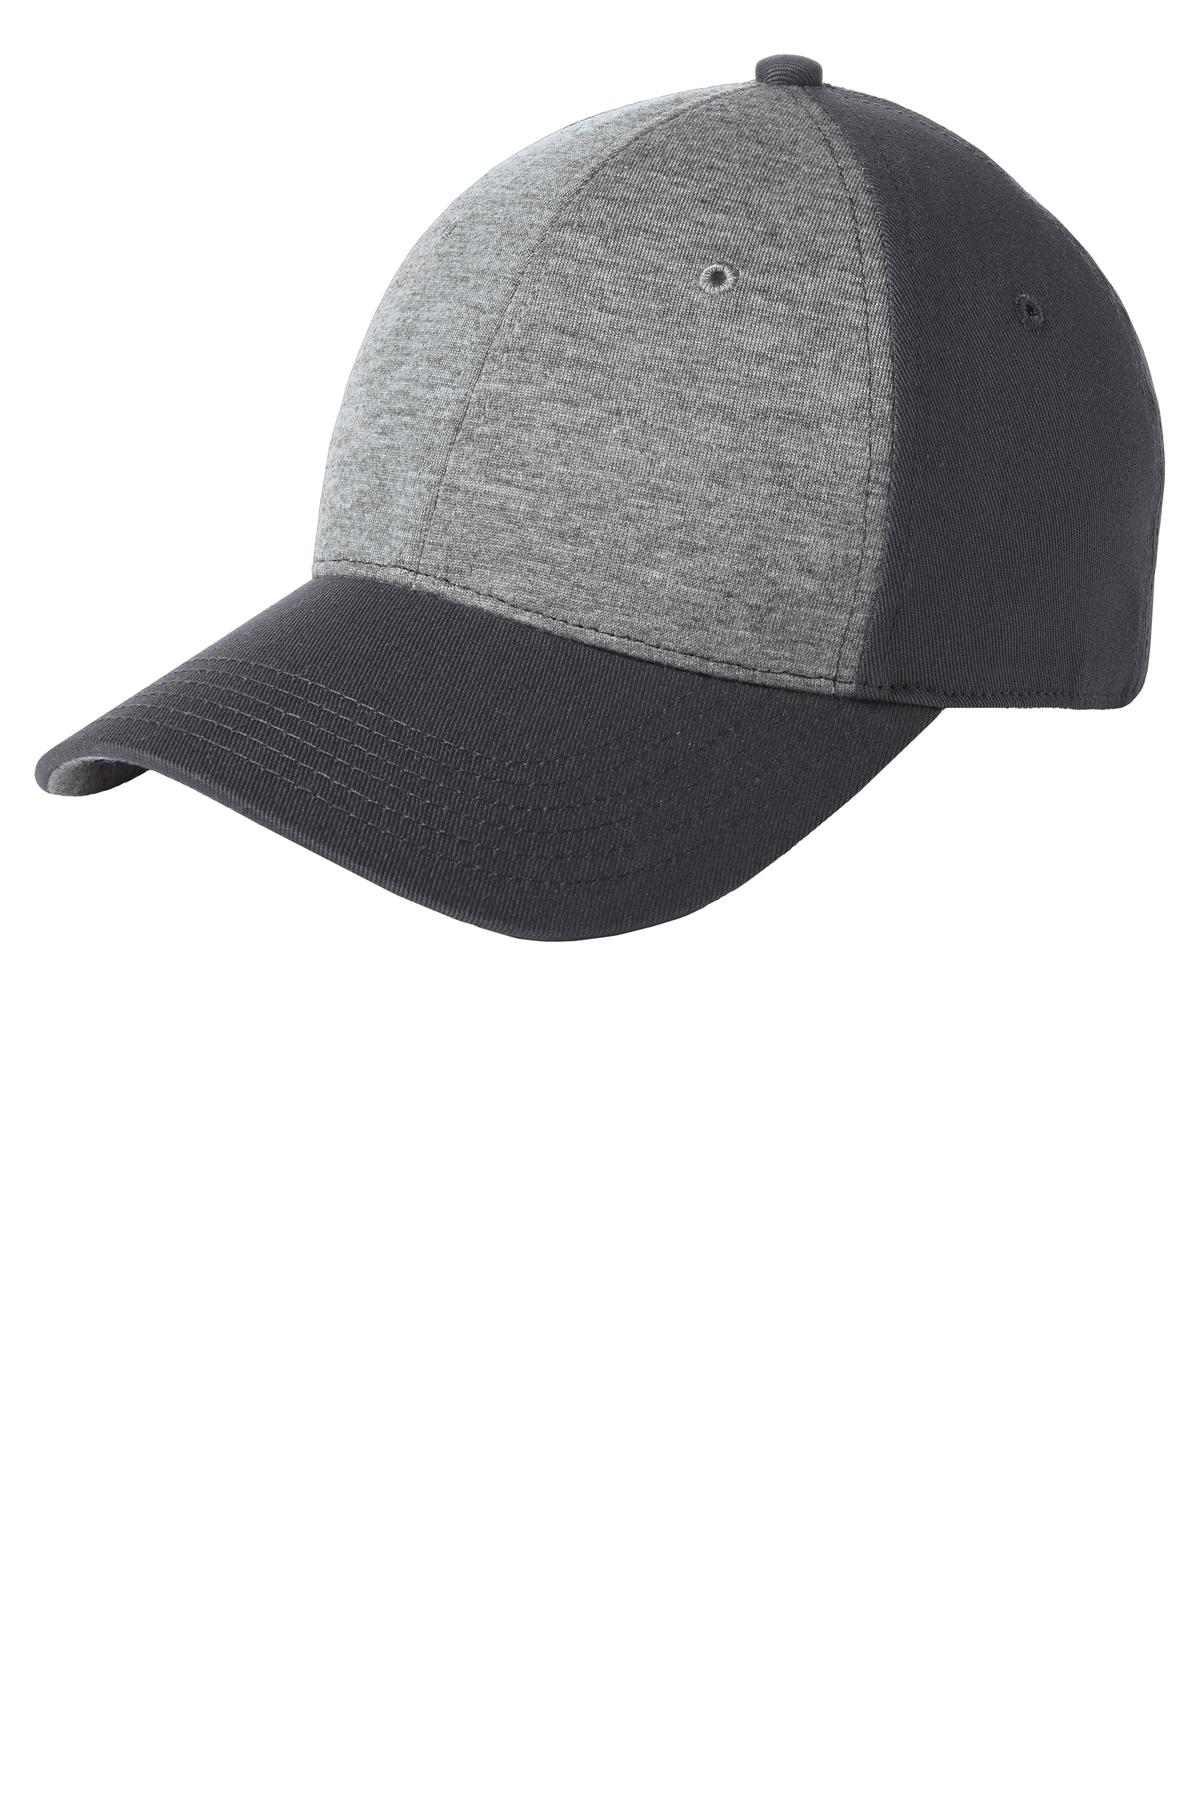 Sport-Tek ®  Jersey Front Cap. STC18 - Vintage Heather/ Iron Grey